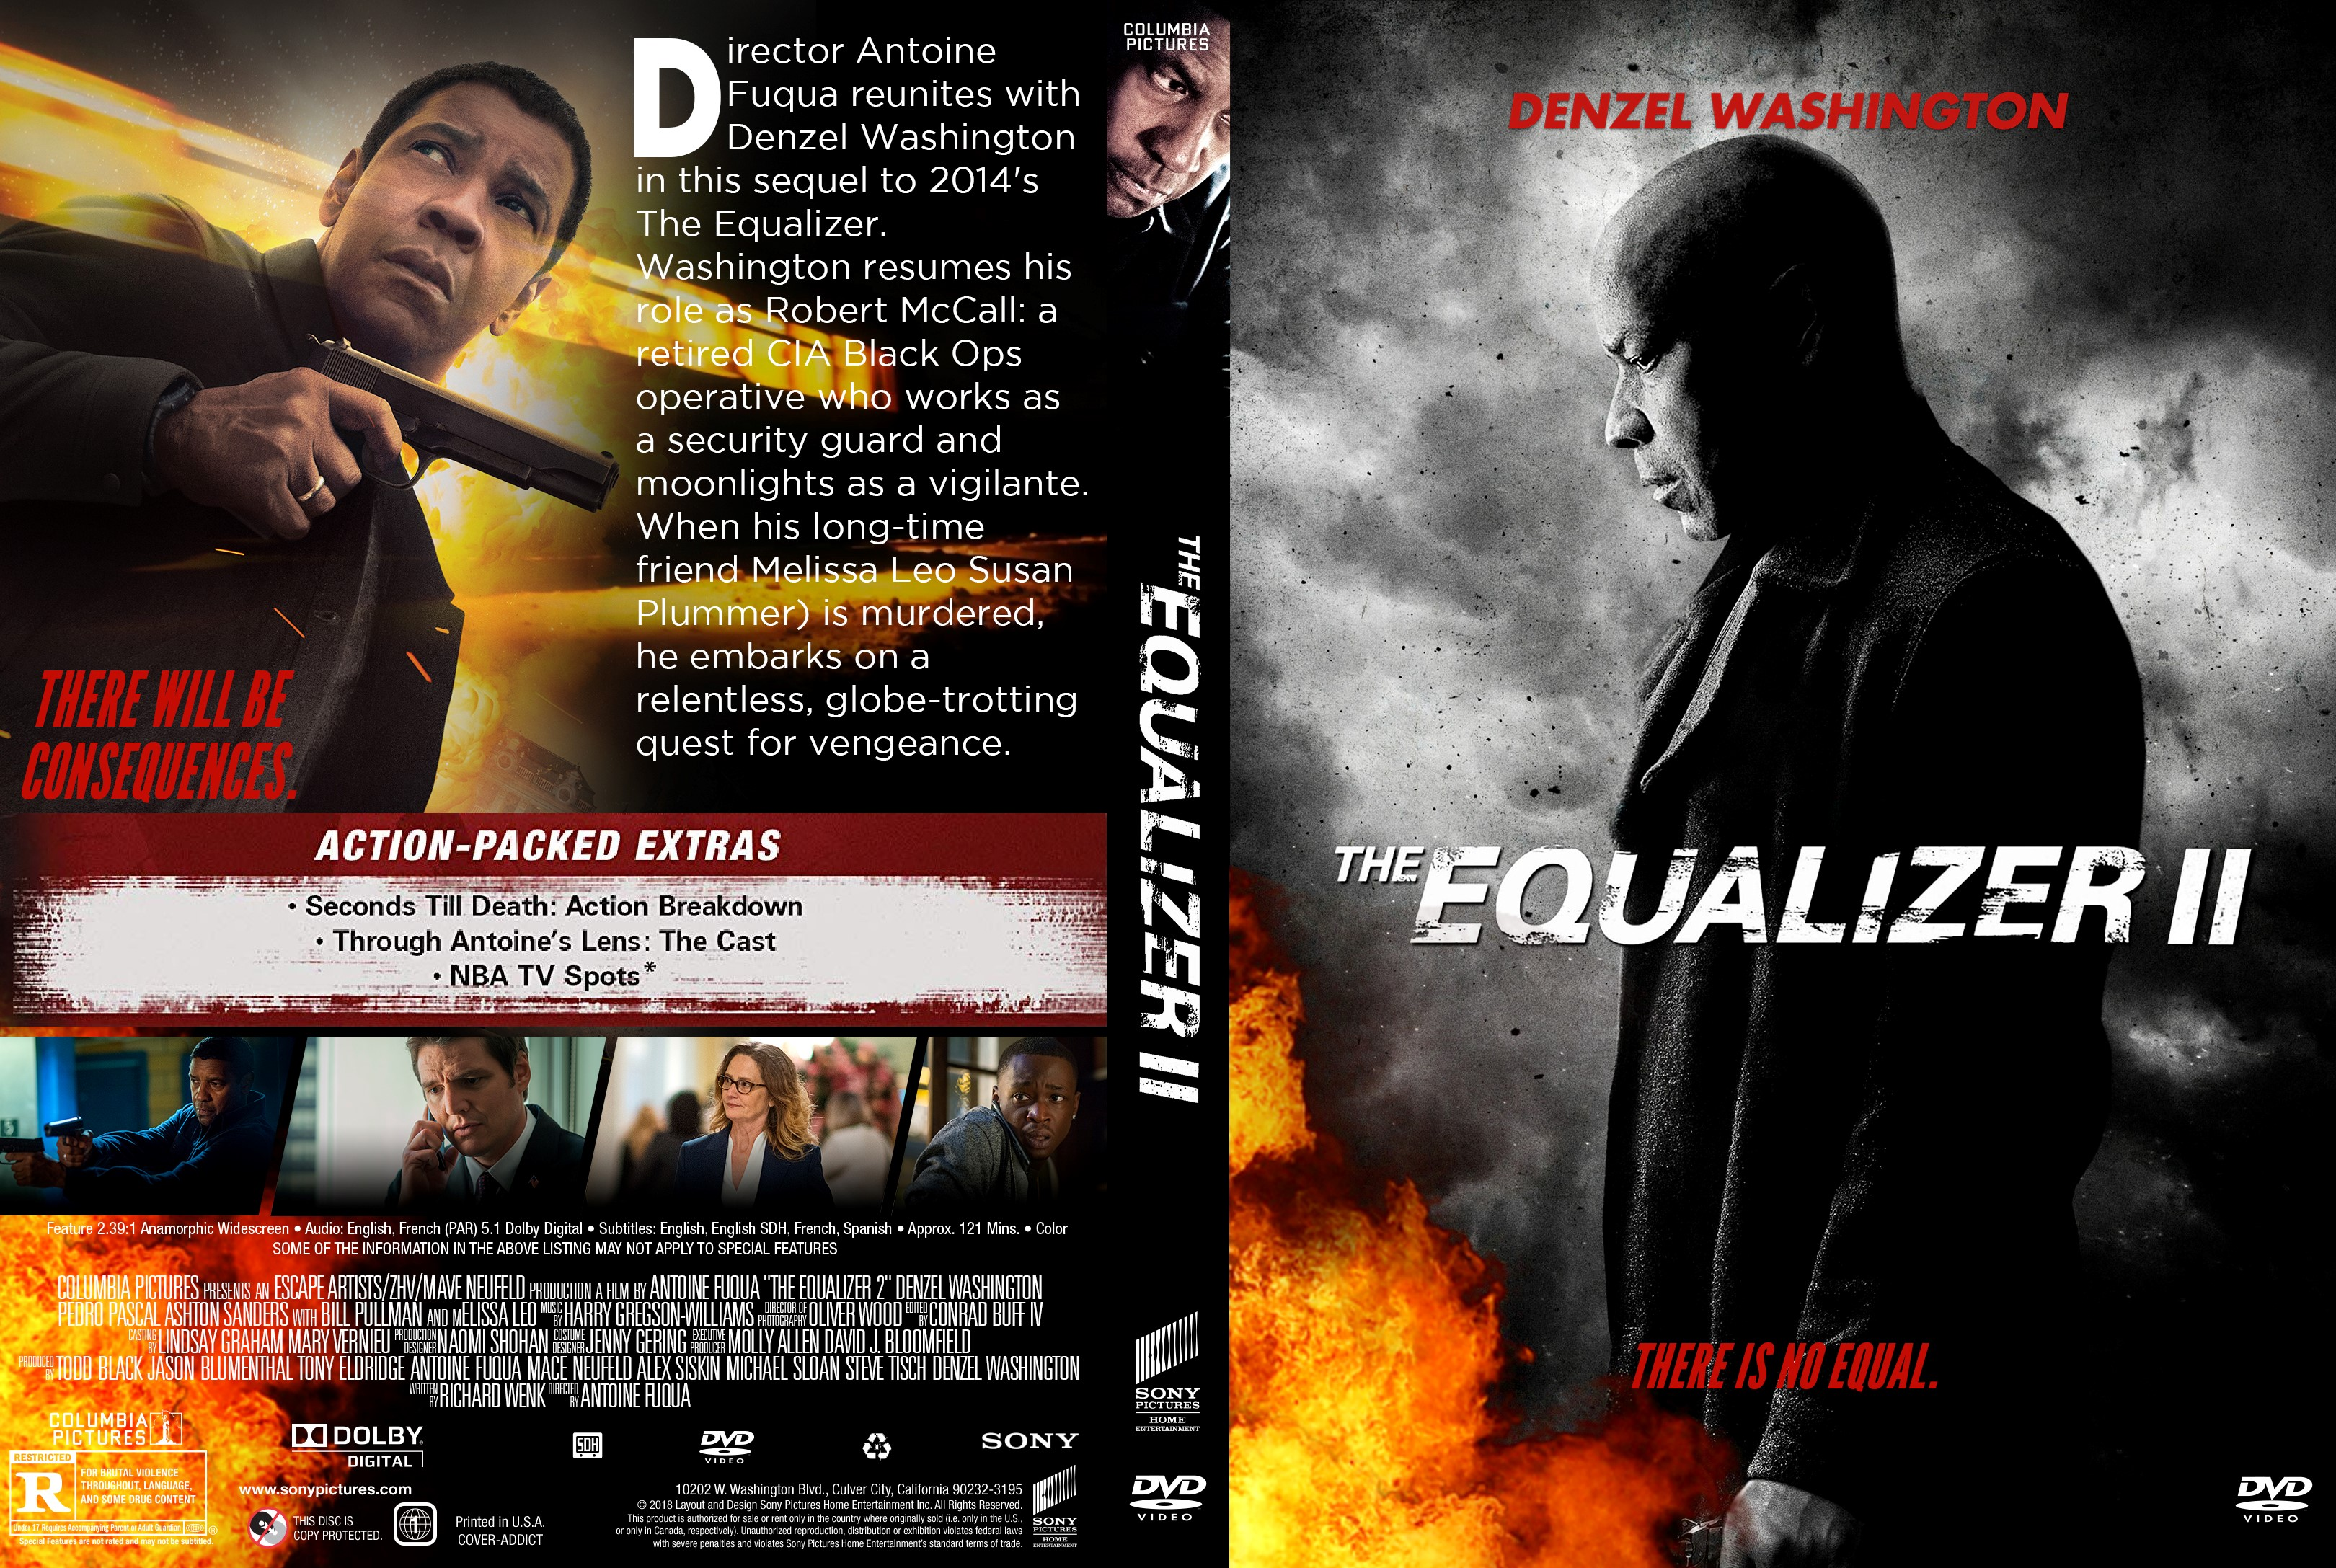 The Equalizer 2 Dvd Cover Cover Addict Dvd Bluray Covers And